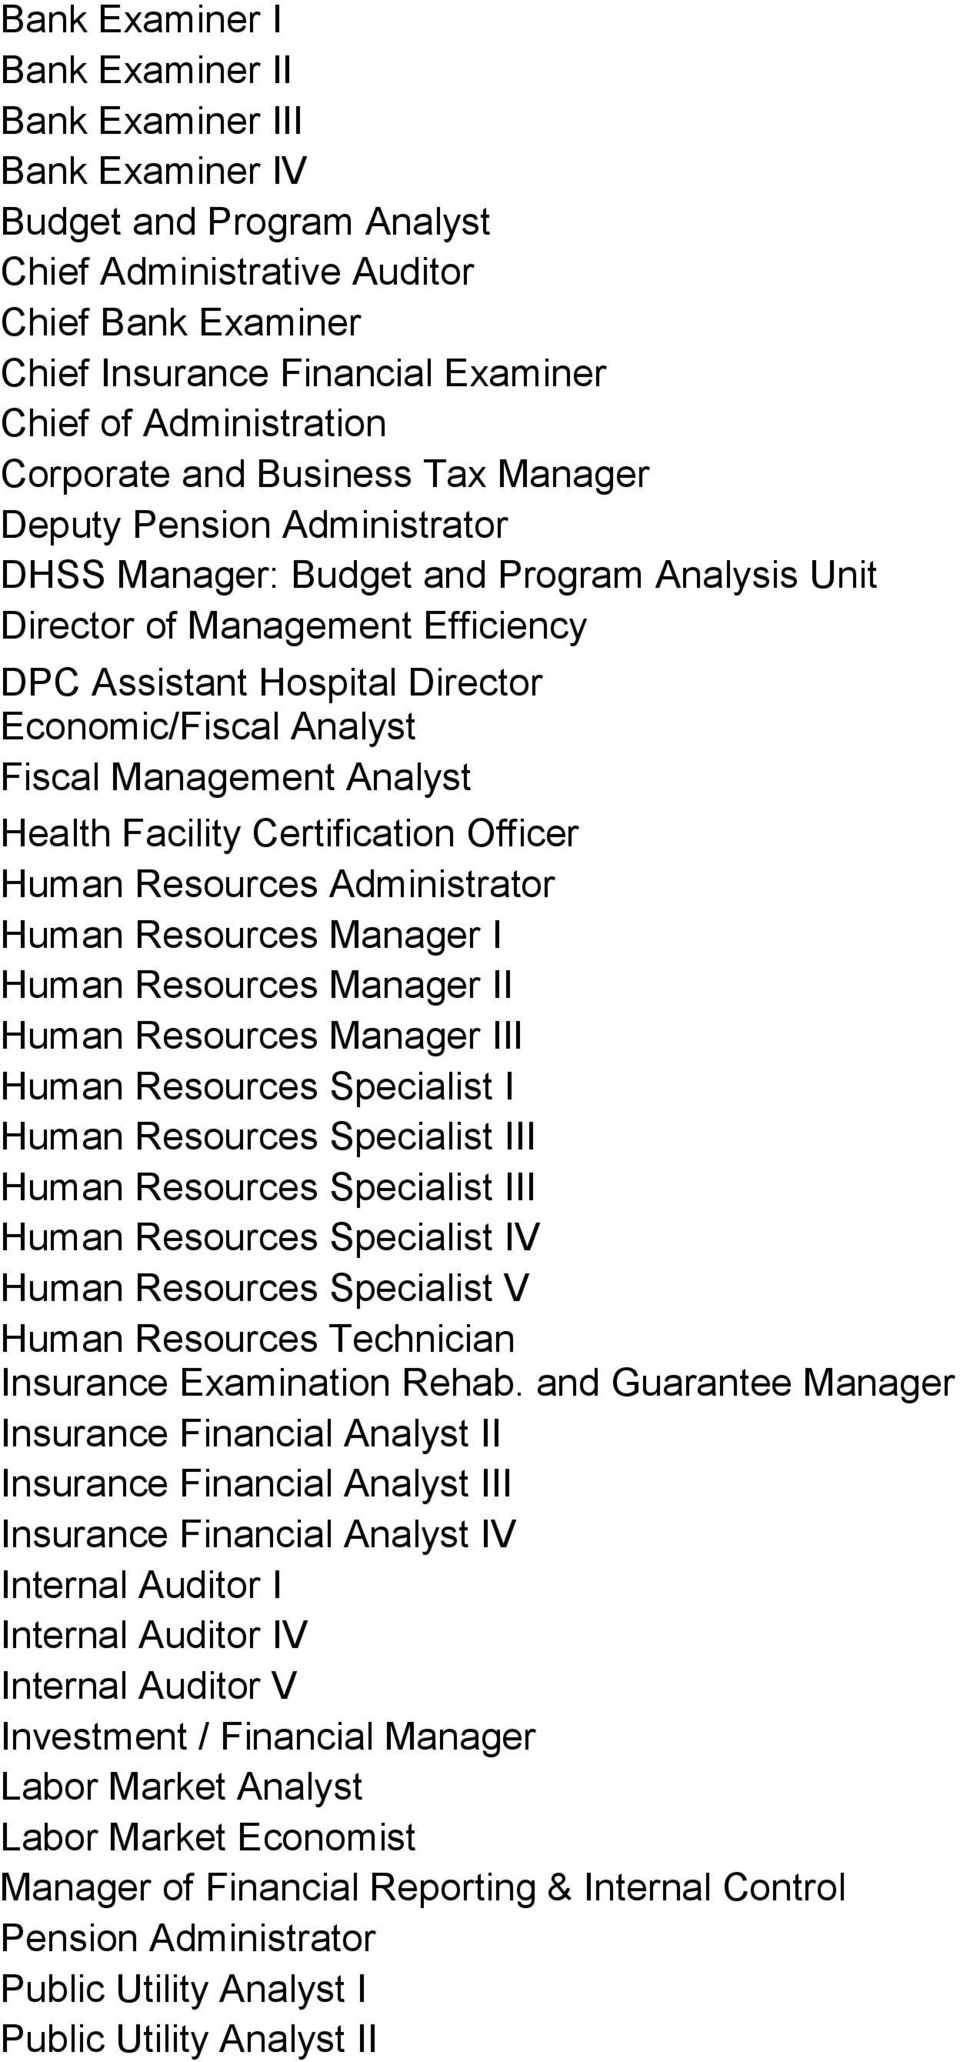 Economic/Fiscal Analyst Fiscal Management Analyst Health Facility Certification Officer Human Resources Administrator Human Resources Manager I Human Resources Manager II Human Resources Manager III